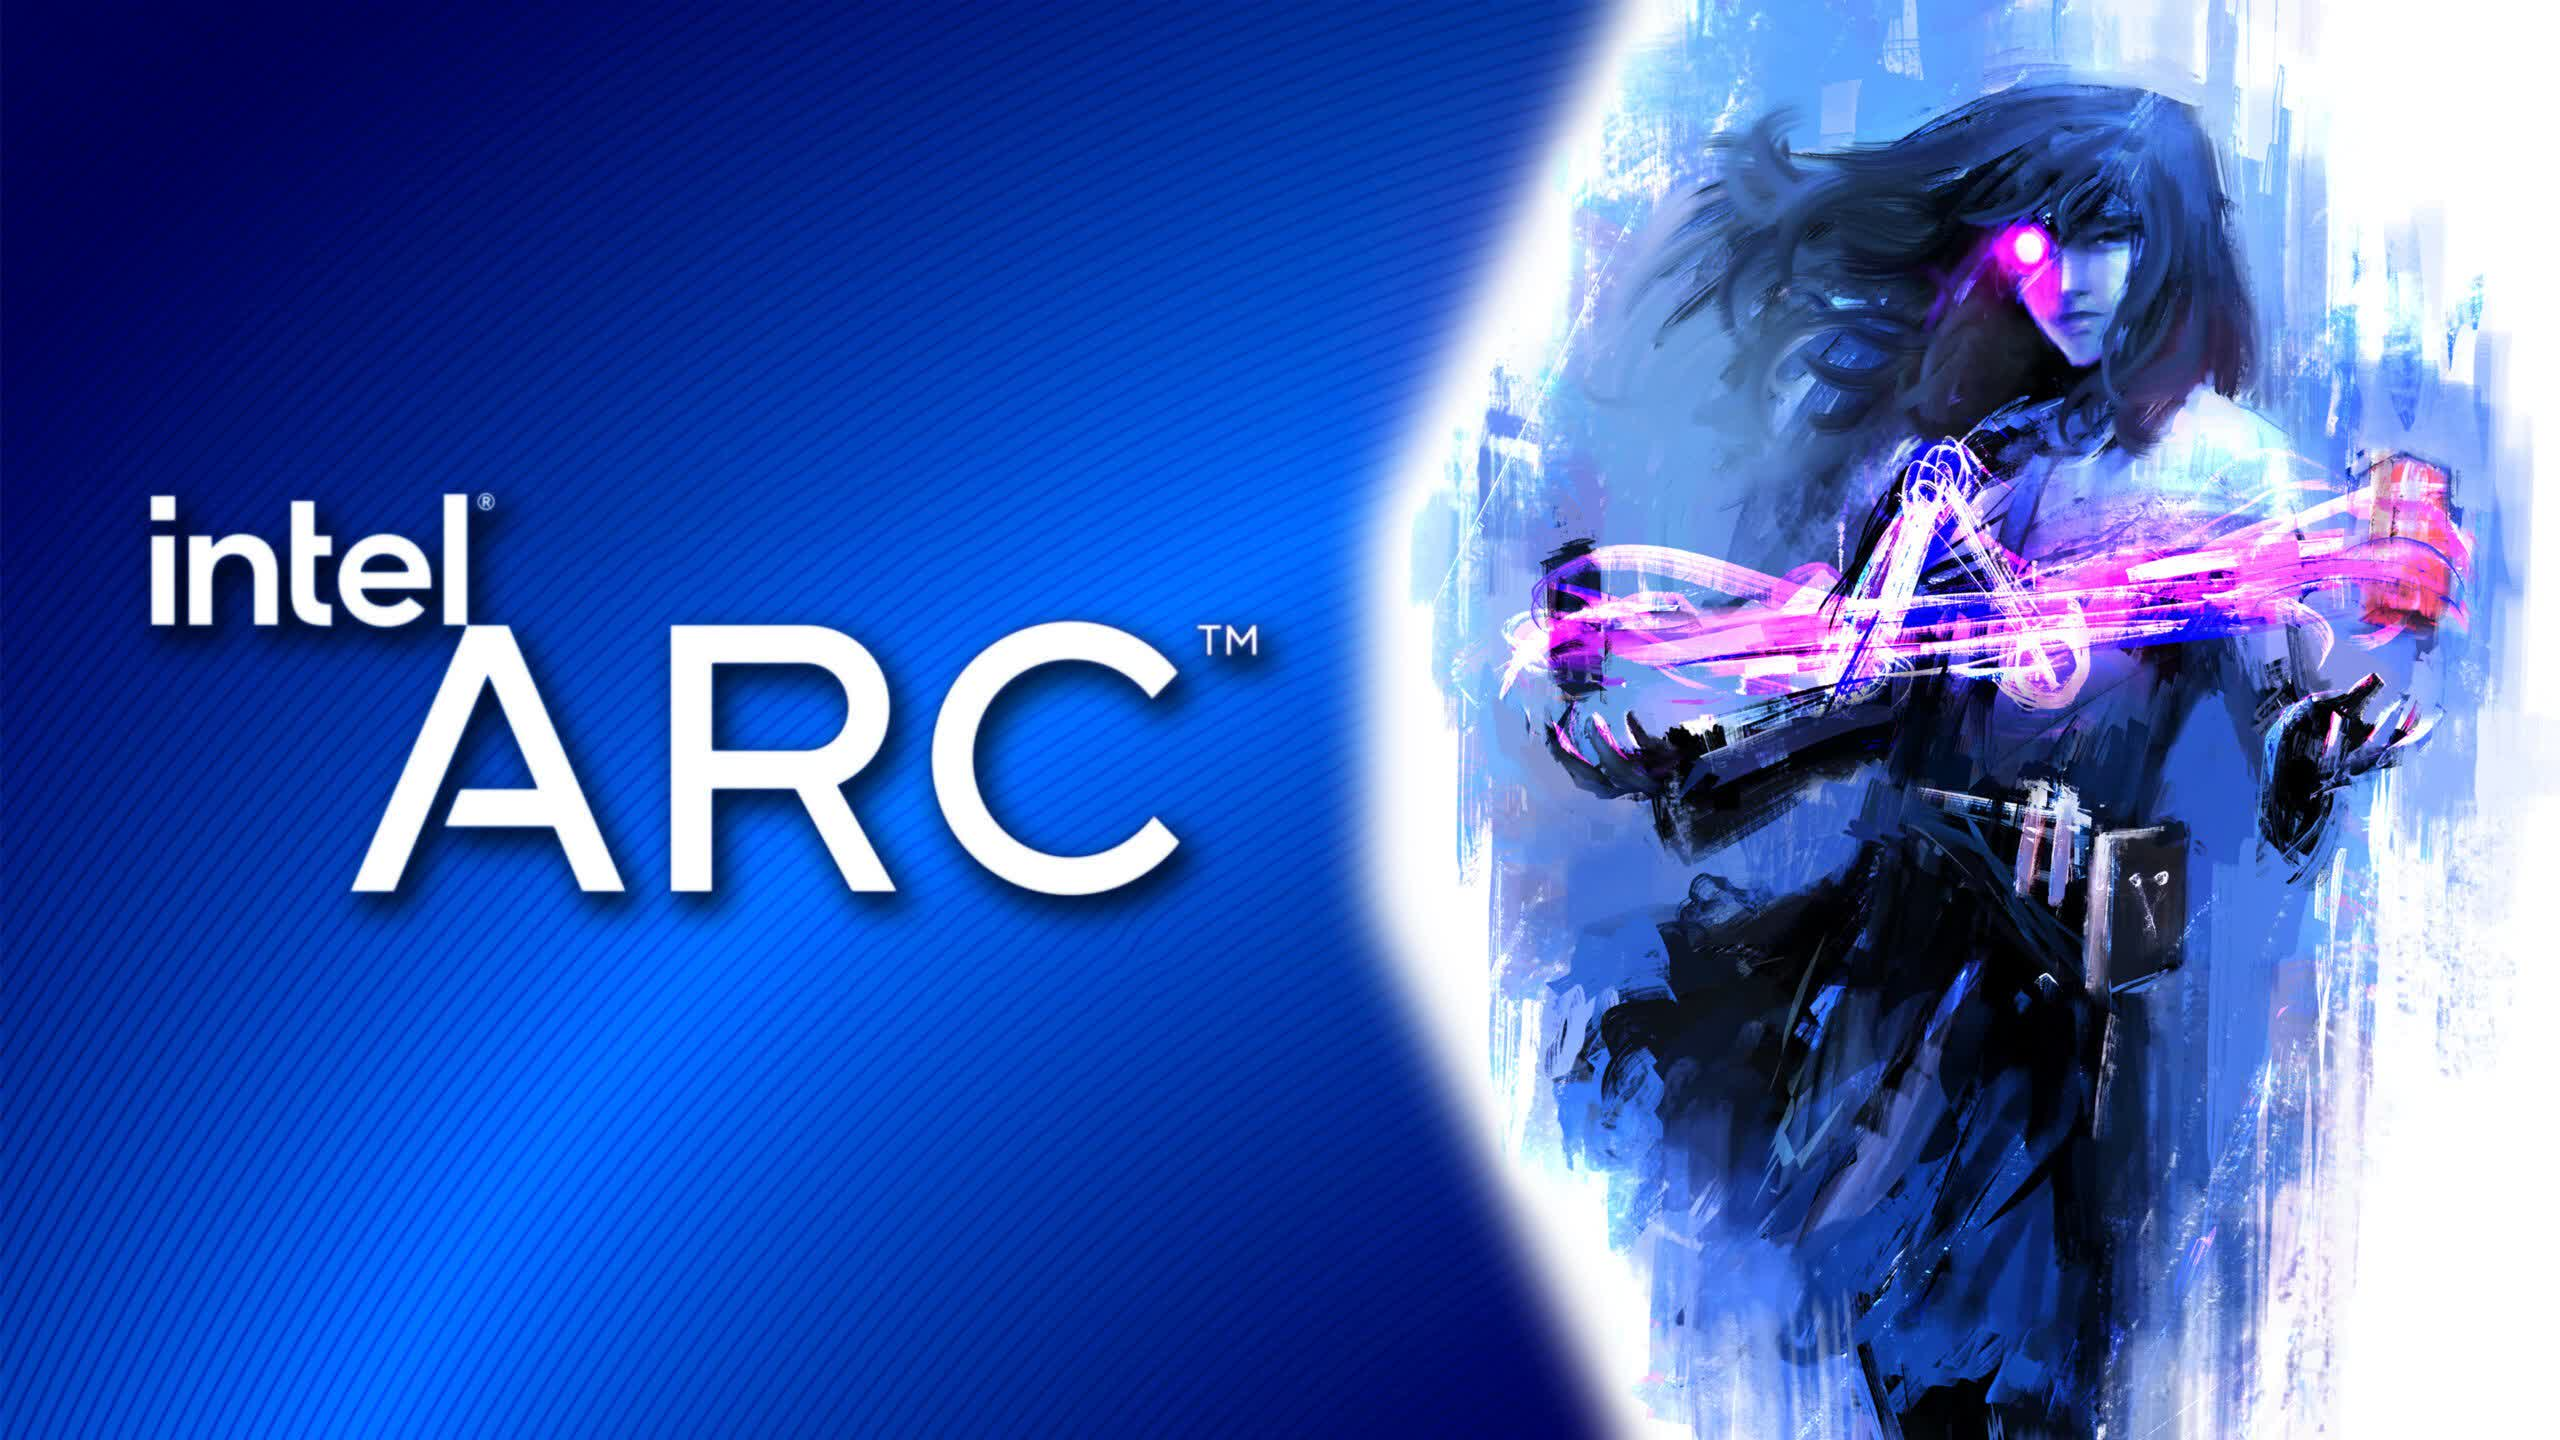 Intel hires game developers ahead of Arc GPU launch